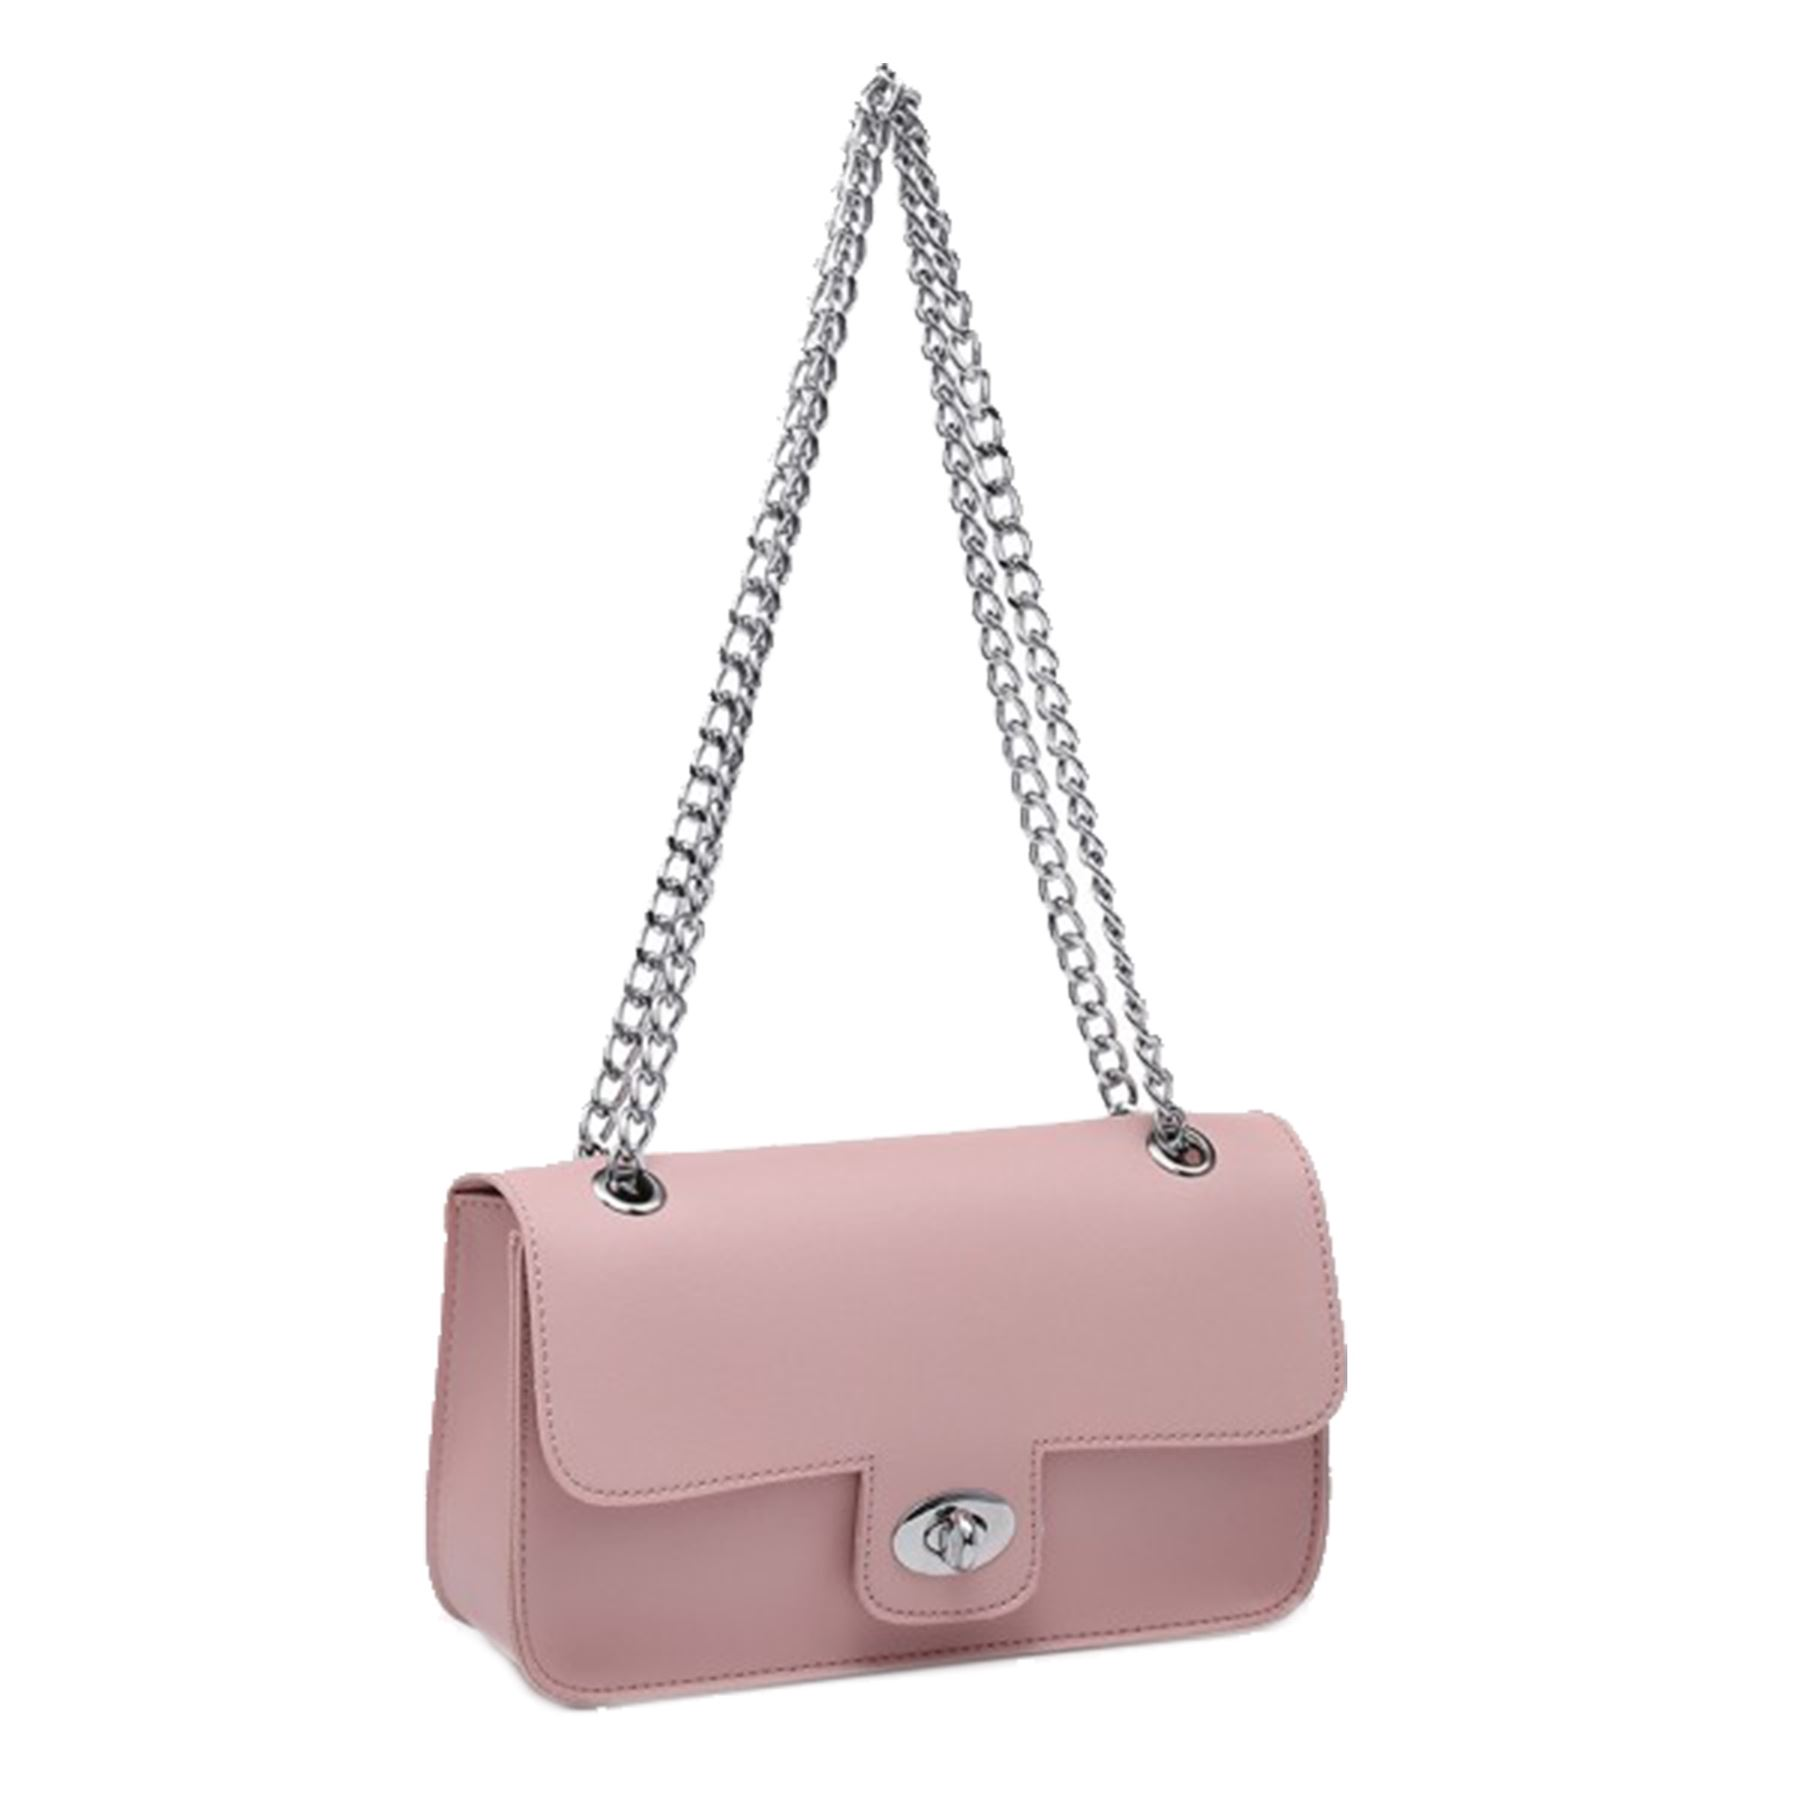 New Women's Synthetic Fashion See-through Chain Strap Mini Shoulder Bag